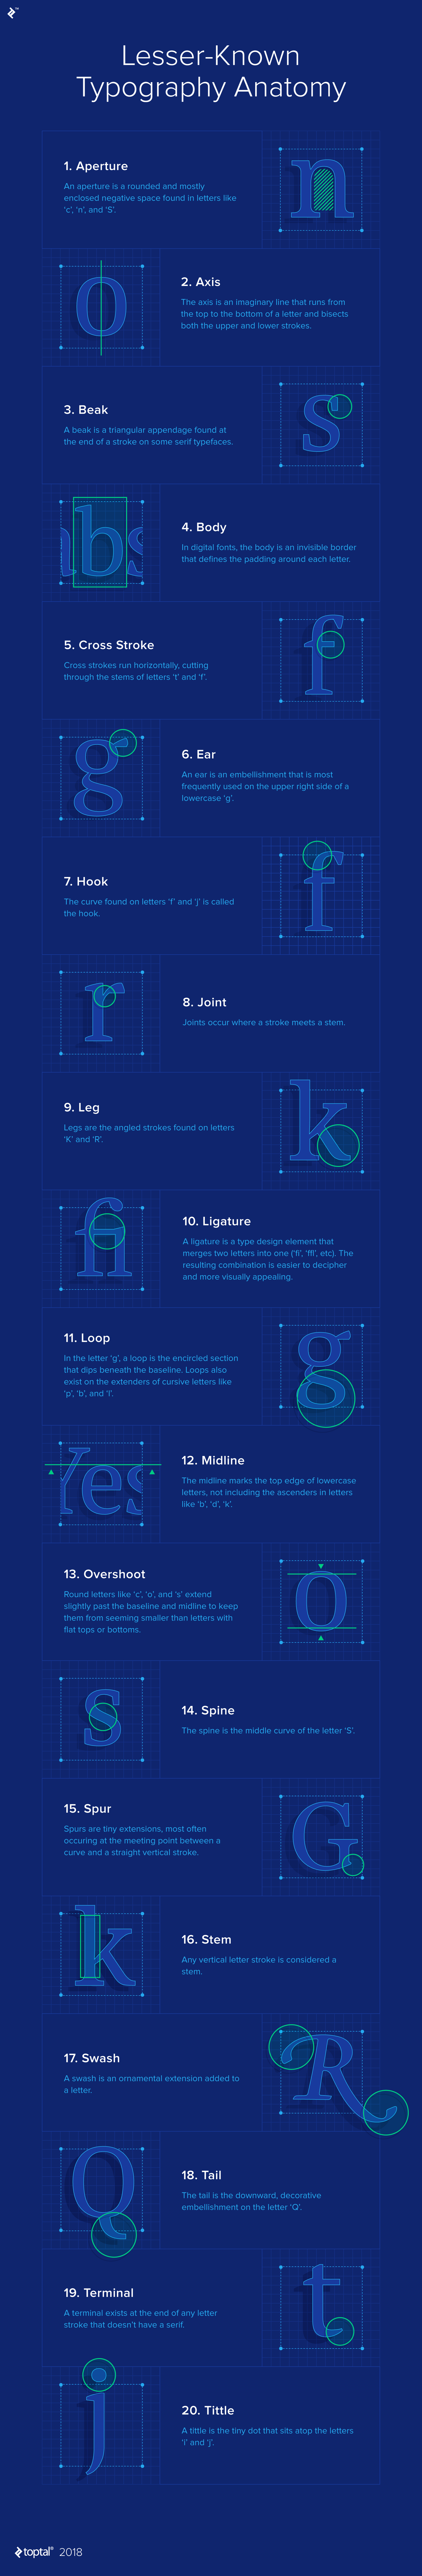 Infographic showing typography anatomy and the anatomy of a letter